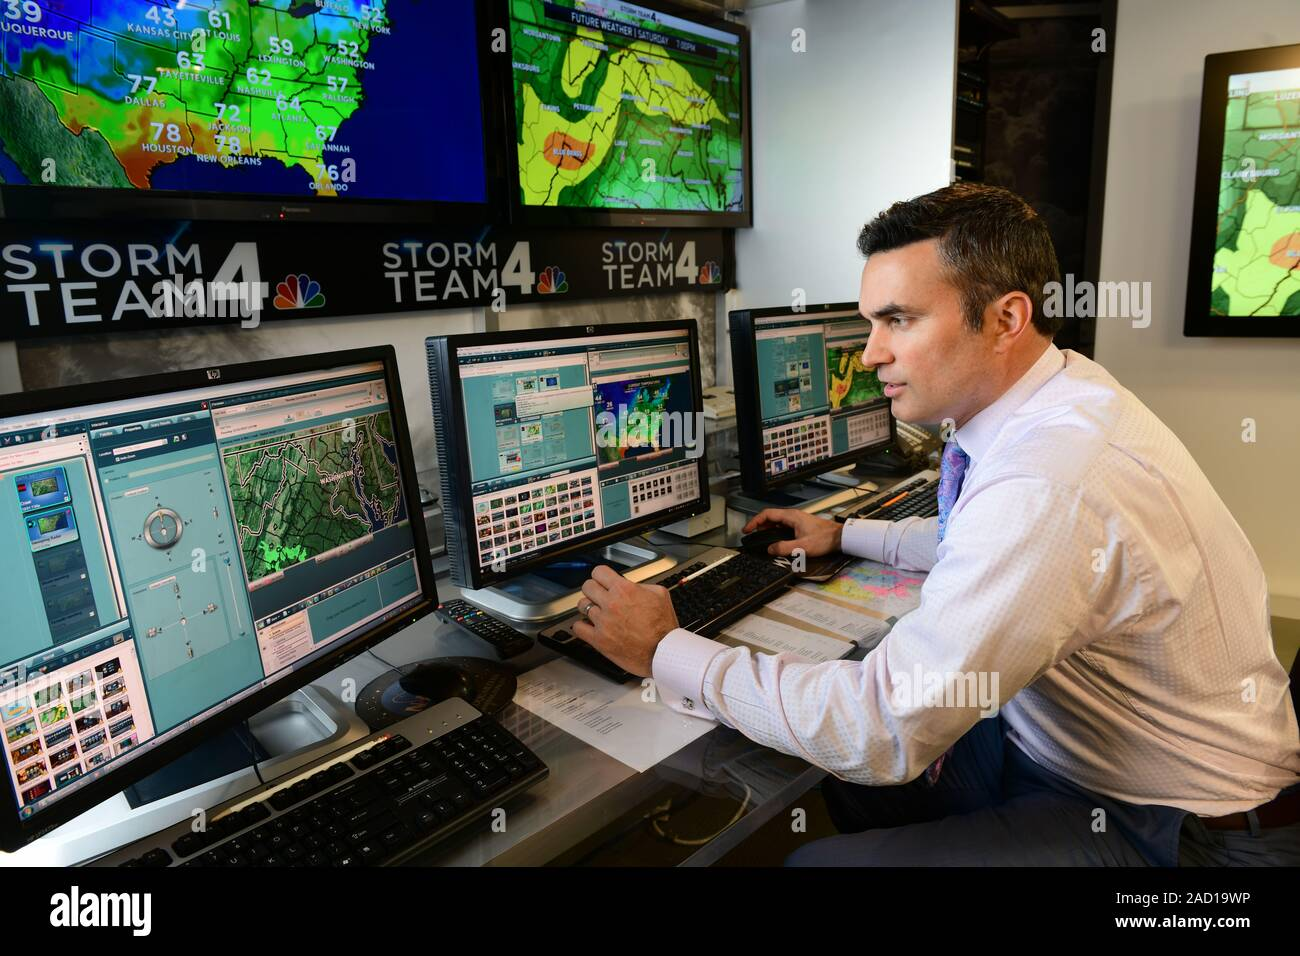 meteorologist-working-on-a-weather-forecast-prediction-for-a-washington-dc-television-station-2AD19WP.jpg